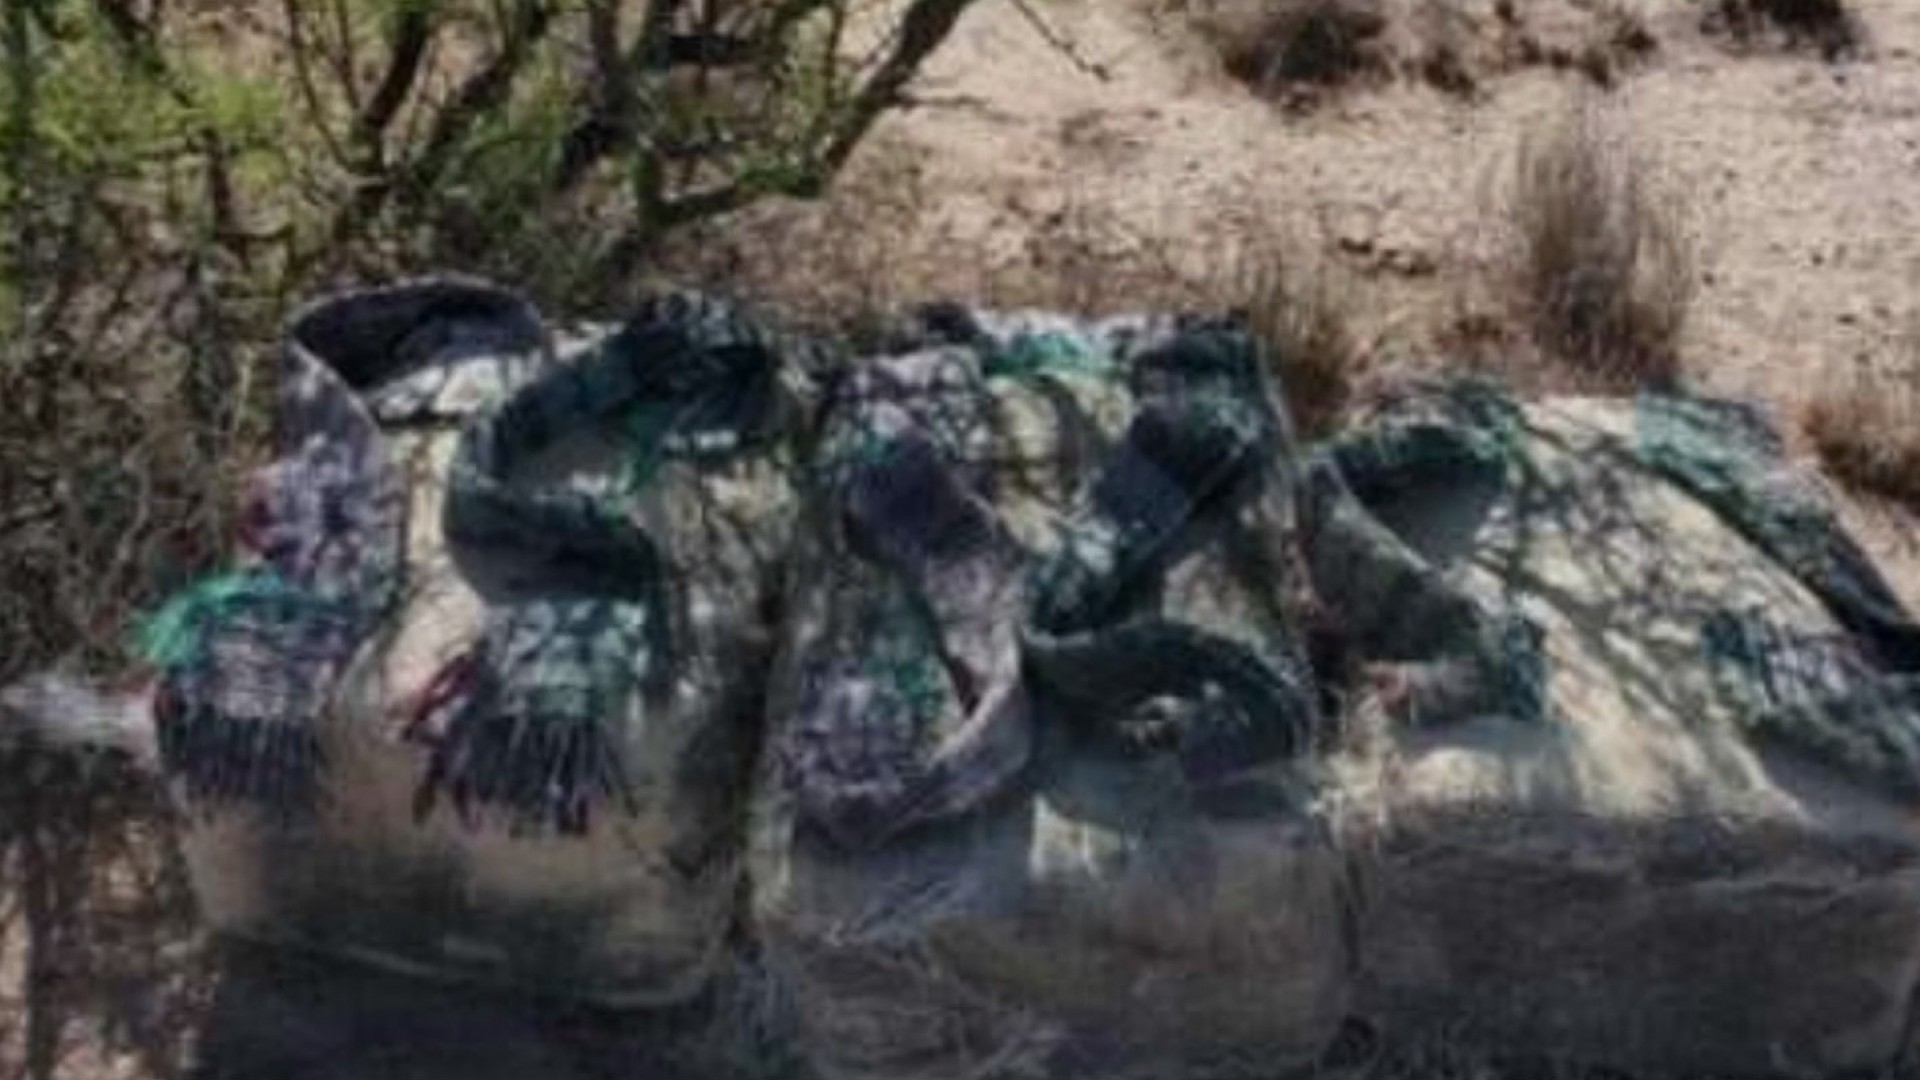 Border Patrol seizes 850 pounds of marijuana near Van Horn